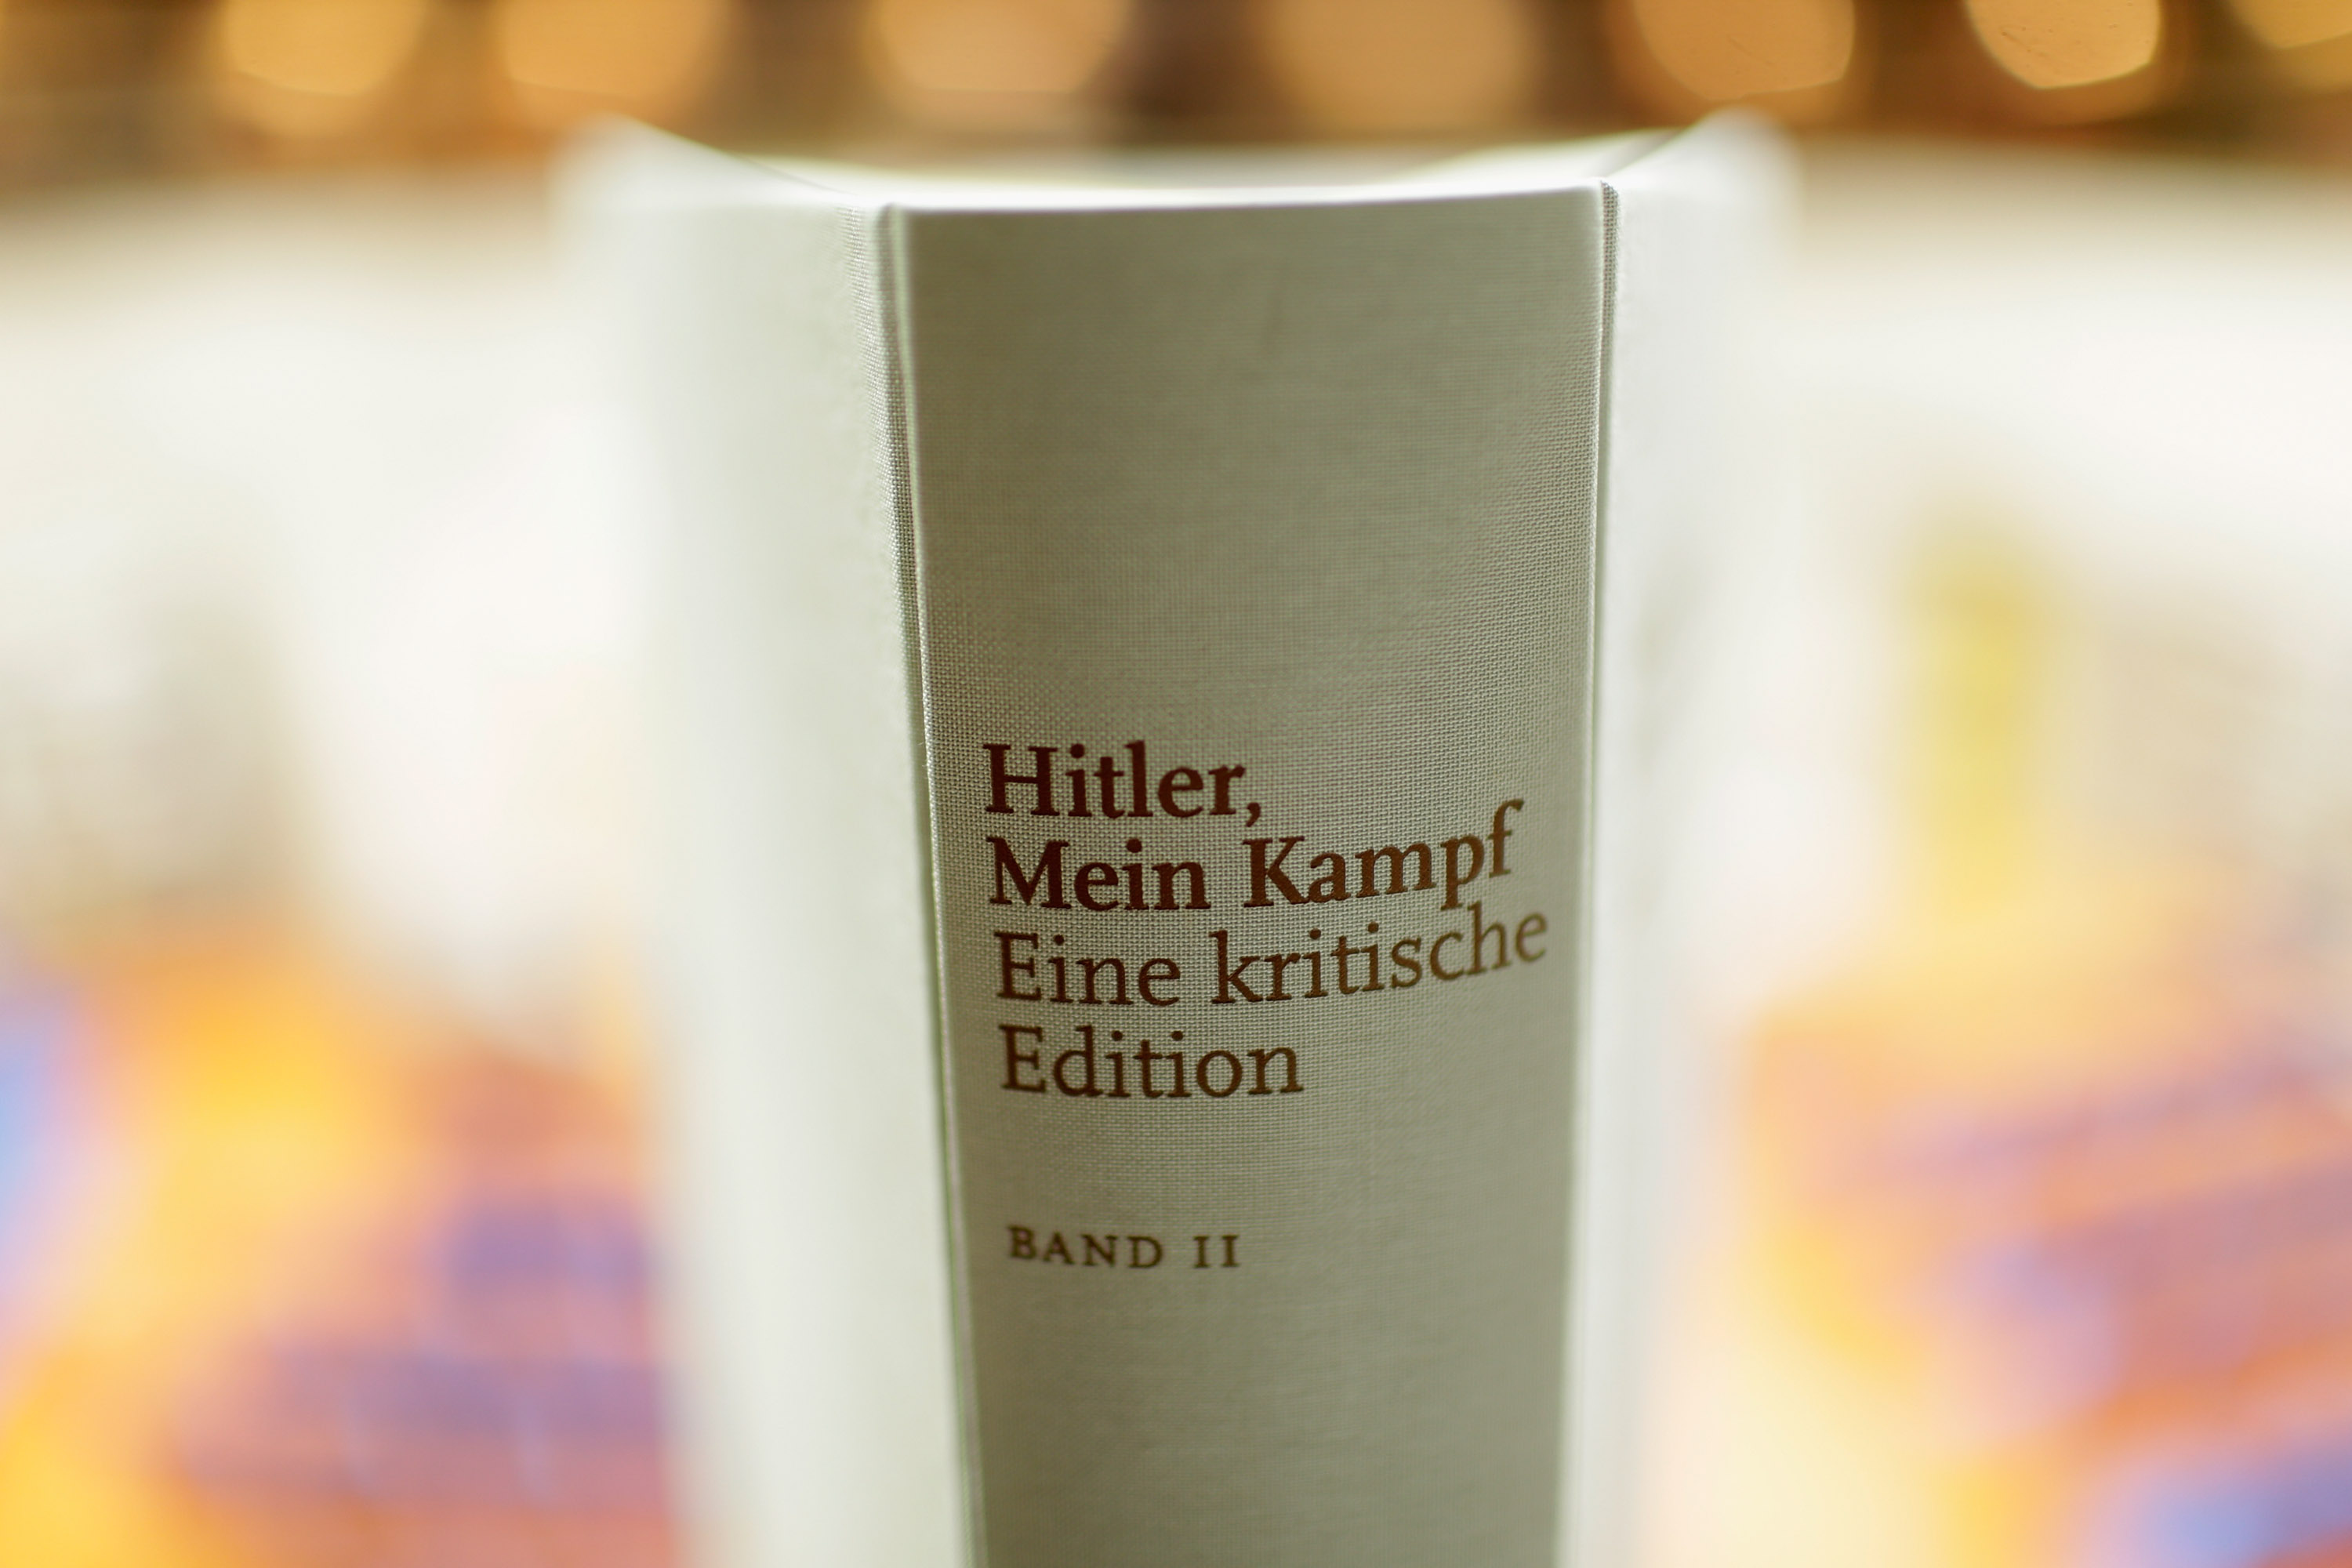 """British historian Sir Ian Kershaw speaks at the presentation of the new critical edition of Adolf Hitler's """"Mein Kampf"""" at the Institut fuer Zeitgeschichte (Institute for Contemporary History)on January 8, 2016 in Munich, Germany. The new edition, which augments Hitler's original text with critical analysis, is the first new publication of the book in Germany since World War II. The state of Bavaria held the copyright to the book and prohibited publication, though the copyright expired on January 1 of this year. Adolf Hitler wrote """"Mein Kampf"""", which is both an autobiography and a presentation of his political views, while he was a prisoner in Germany in the 1920s."""